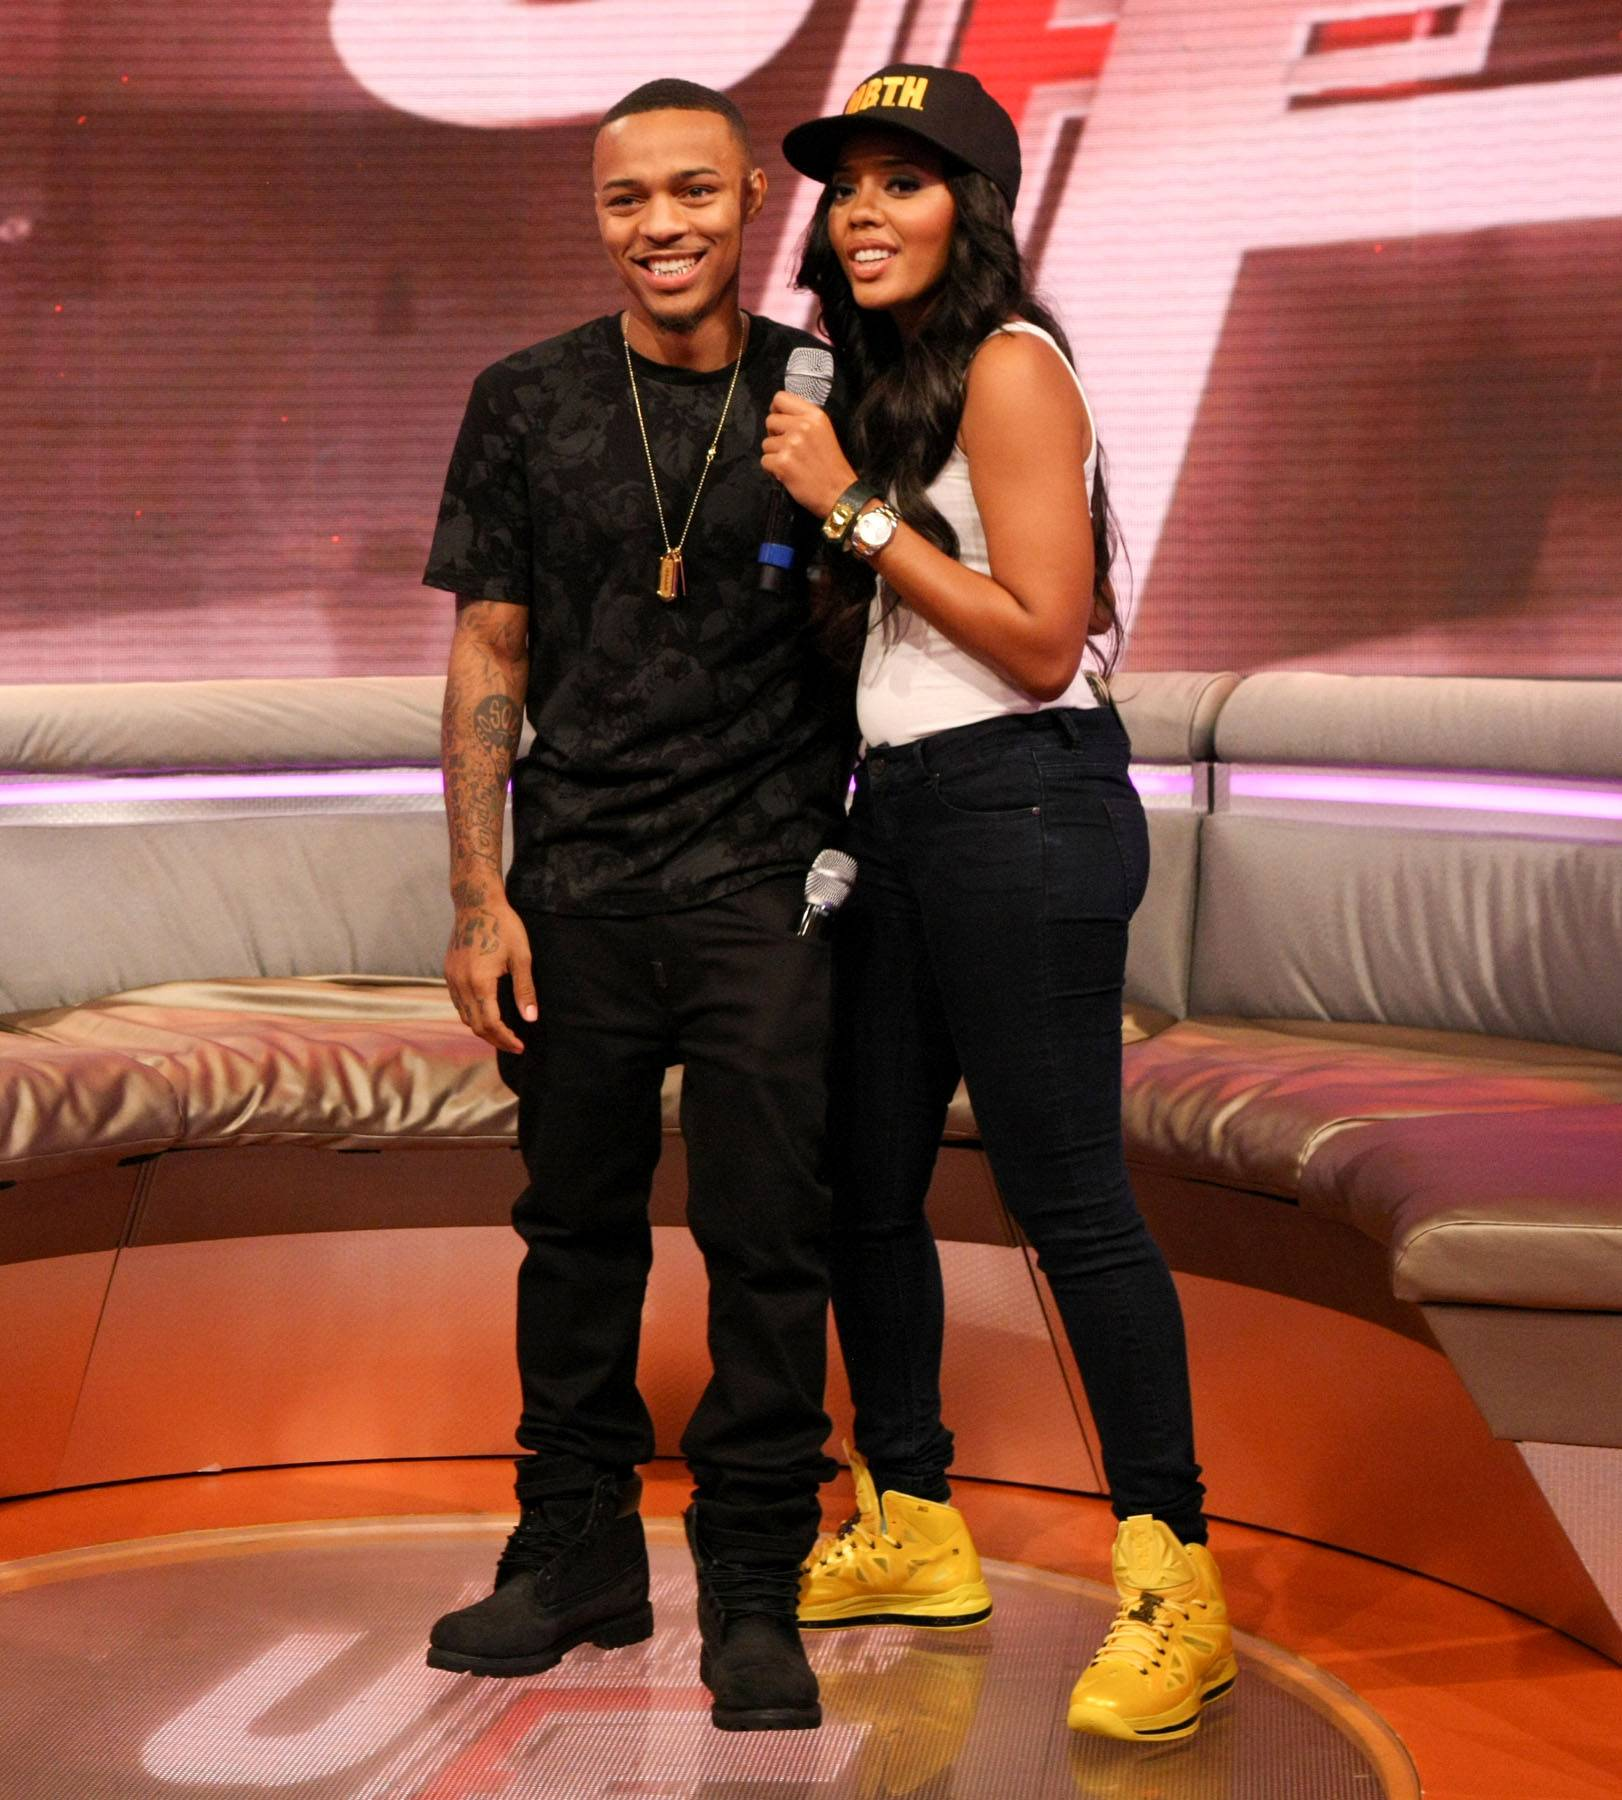 Stuntin' - Hosts Bow Wow and Angela Simmons on the set of 106. (Photo: Bennett Raglin/BET/Getty Images for BET)